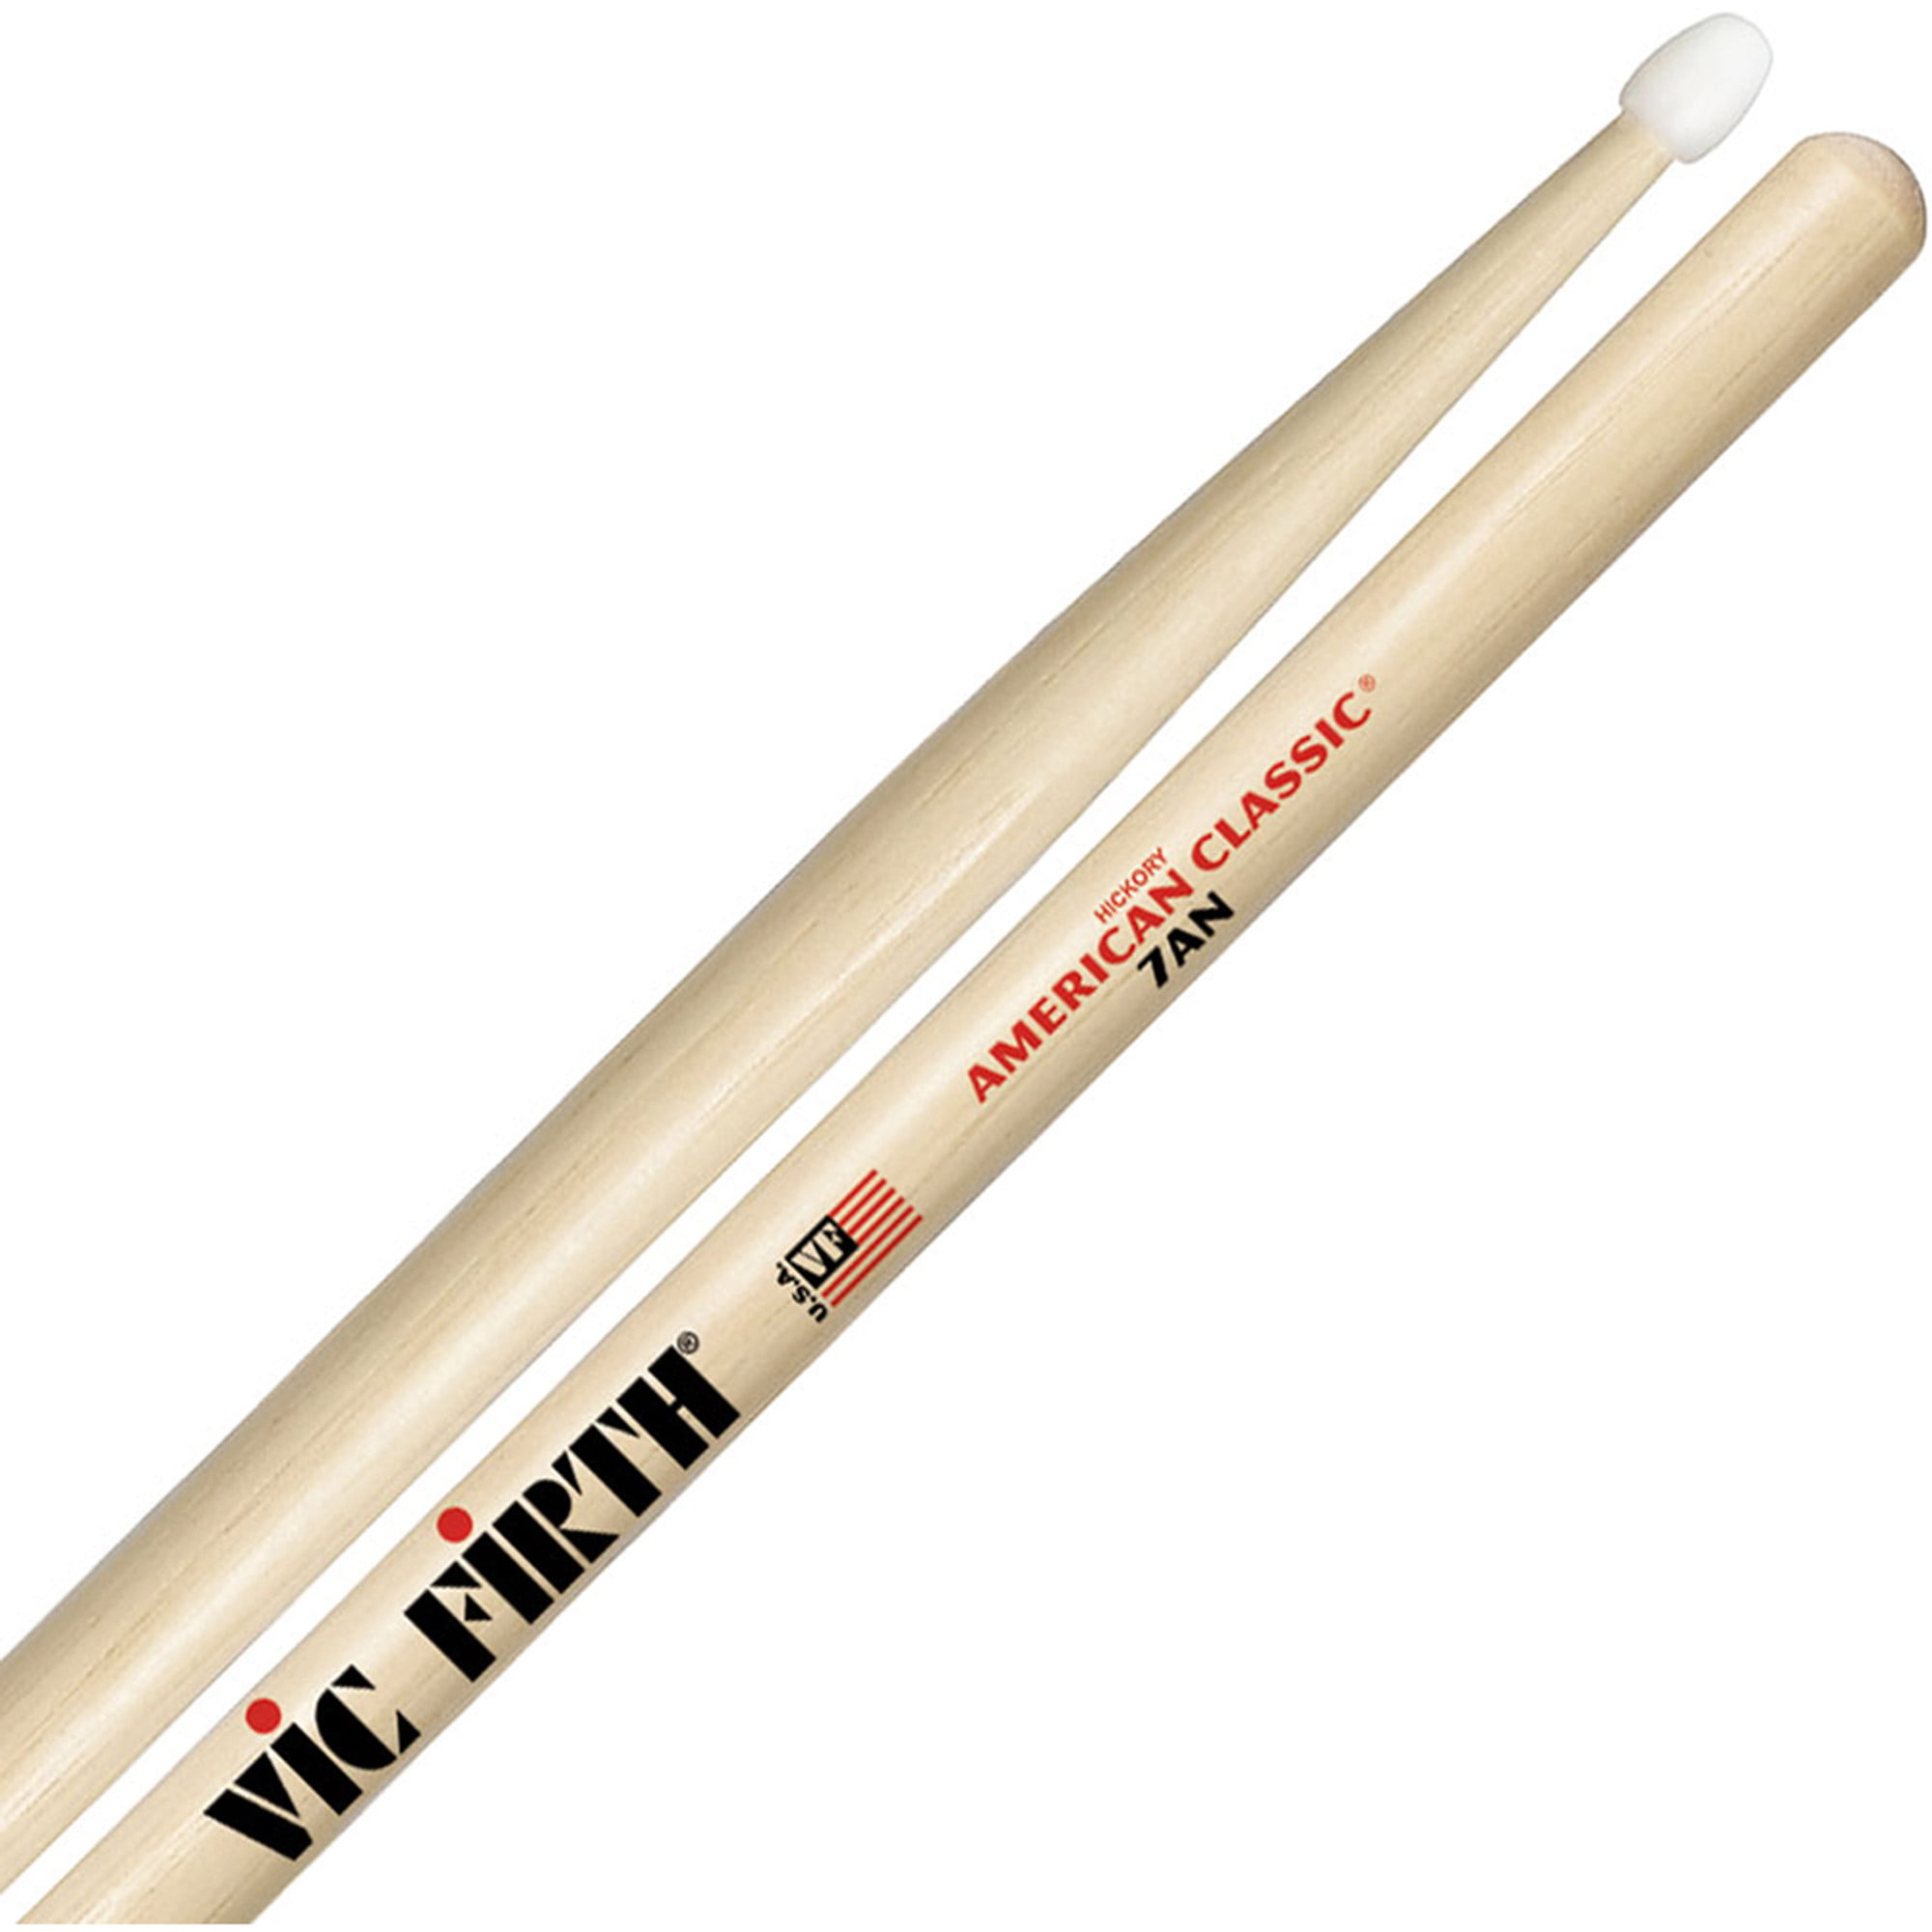 Vic Firth American Classic 7AN Nylon Tip Hickory Drumsticks by Vic Firth